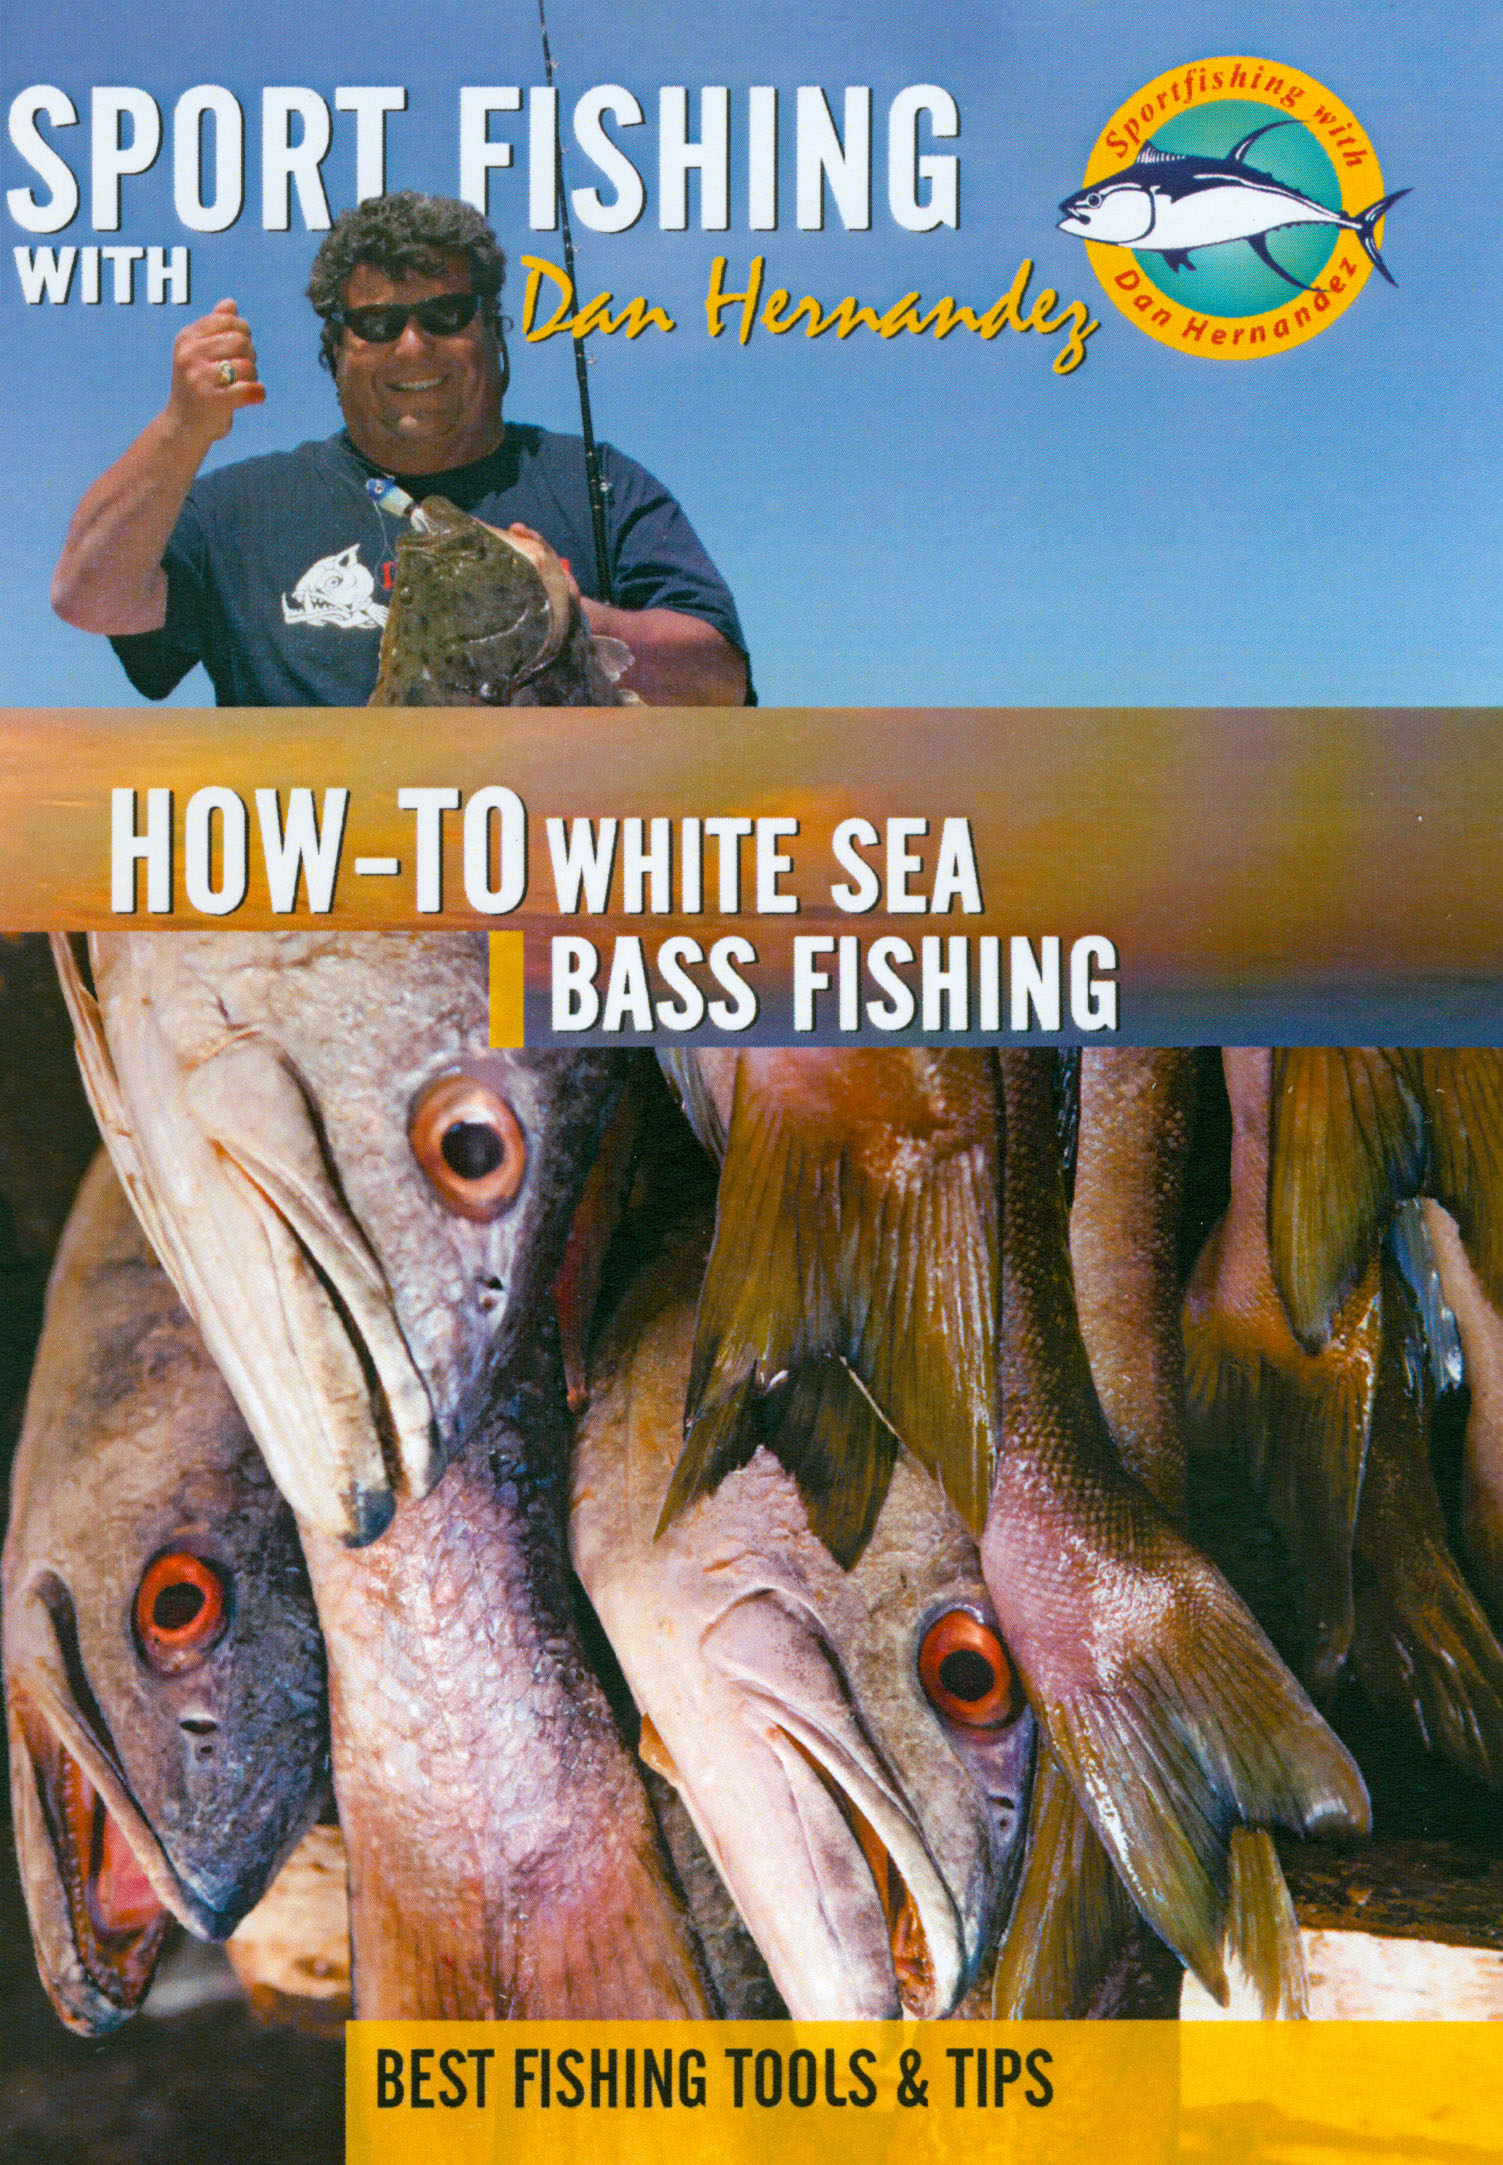 Sport Fishing With Dan Hernandez: How-To White Sea Bass Fishing